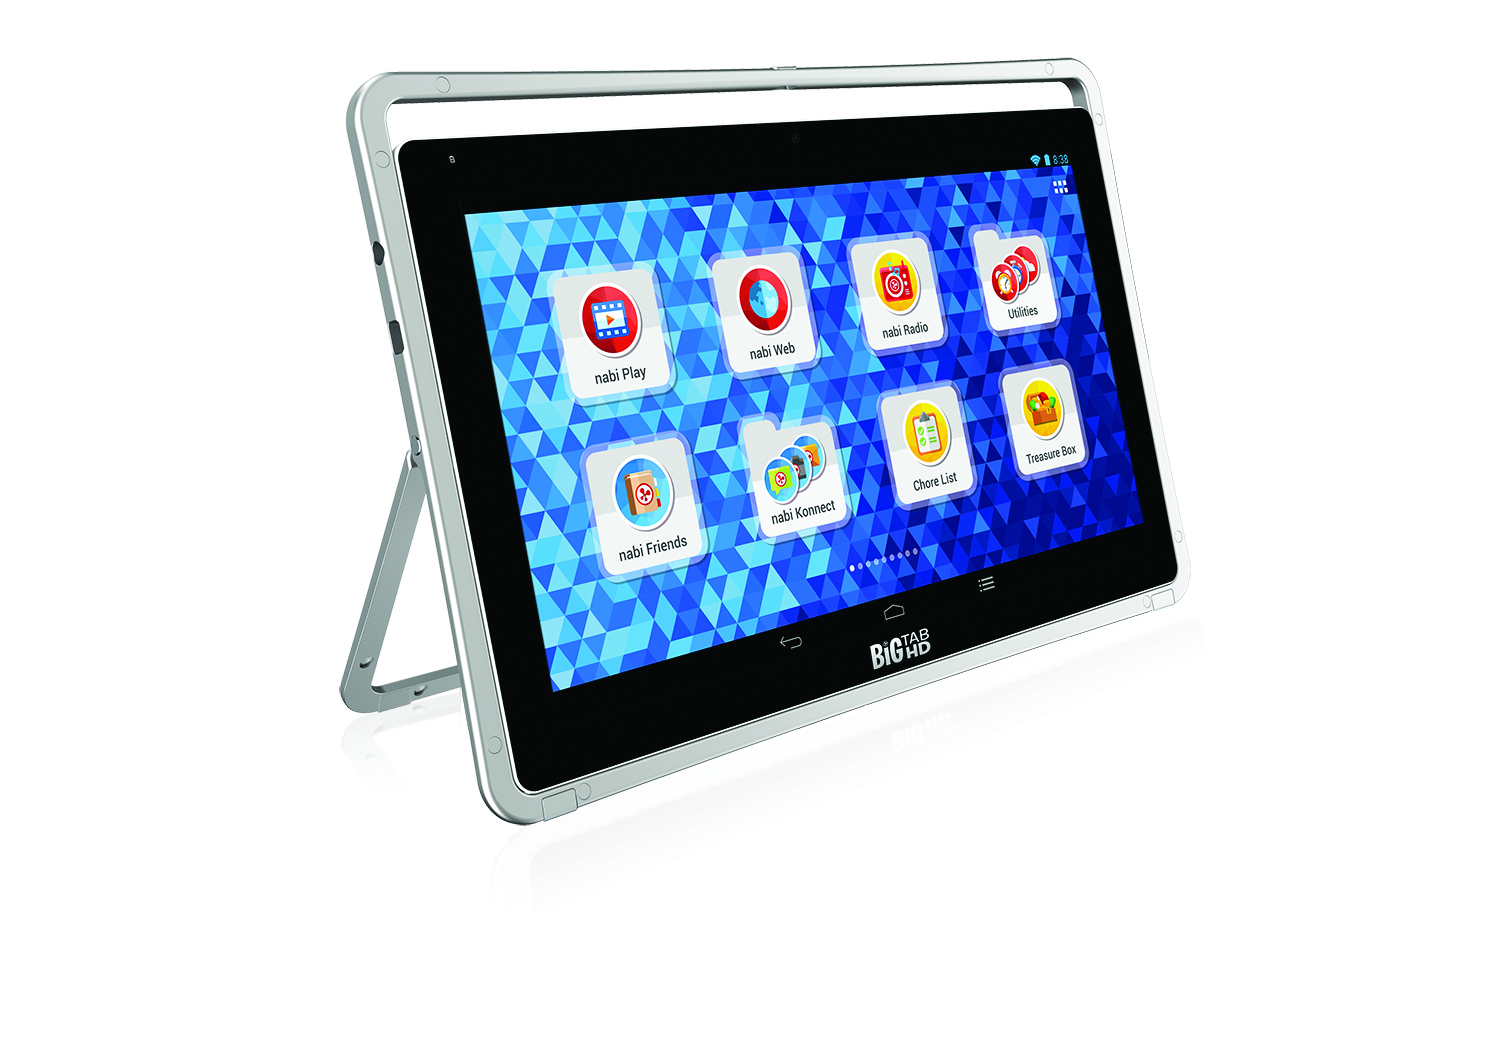 Fuhu's Big Tab tablet boasts a screen as large as 24 inches.